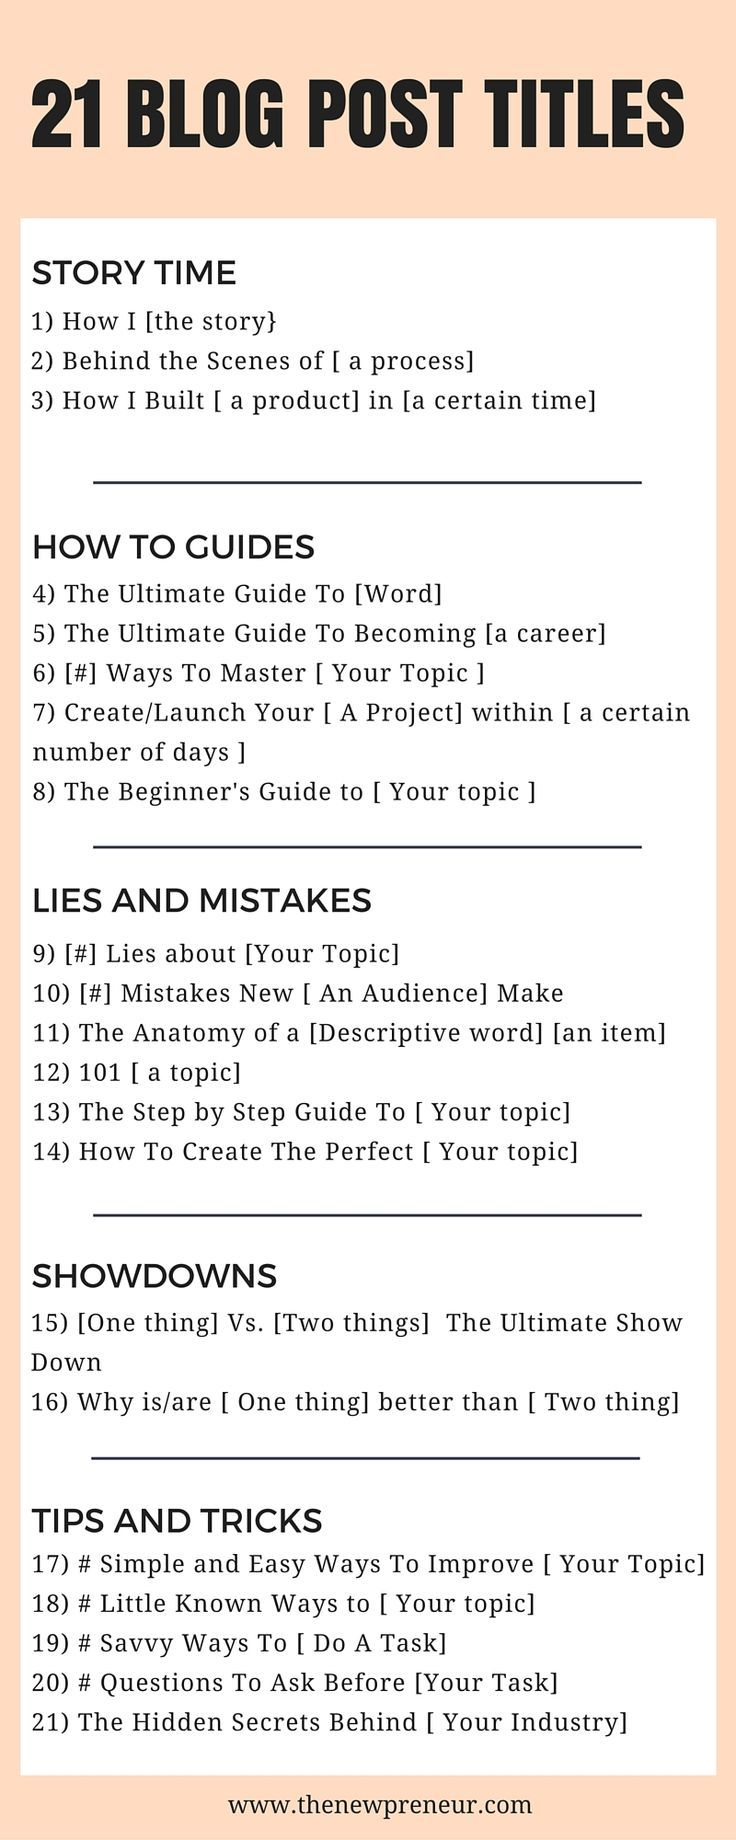 21 eye catching blog post titles - Here are 21 different titles you can use for improving your blog content, increase your traffic, and more. This also includes a free workbook you can use as a guide.